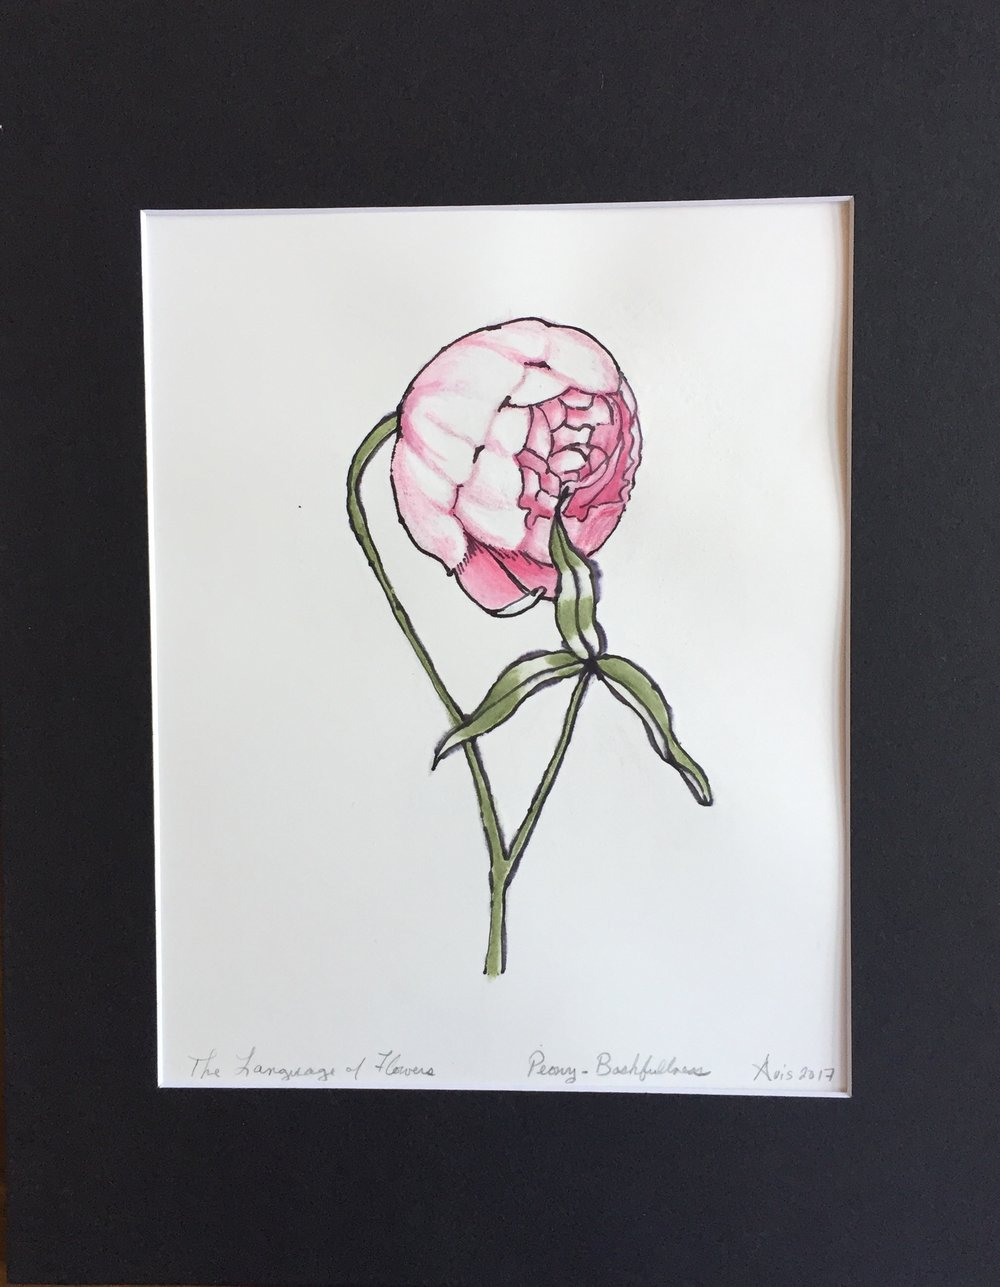 The Language of Flowers, Peony-Bashfulness.